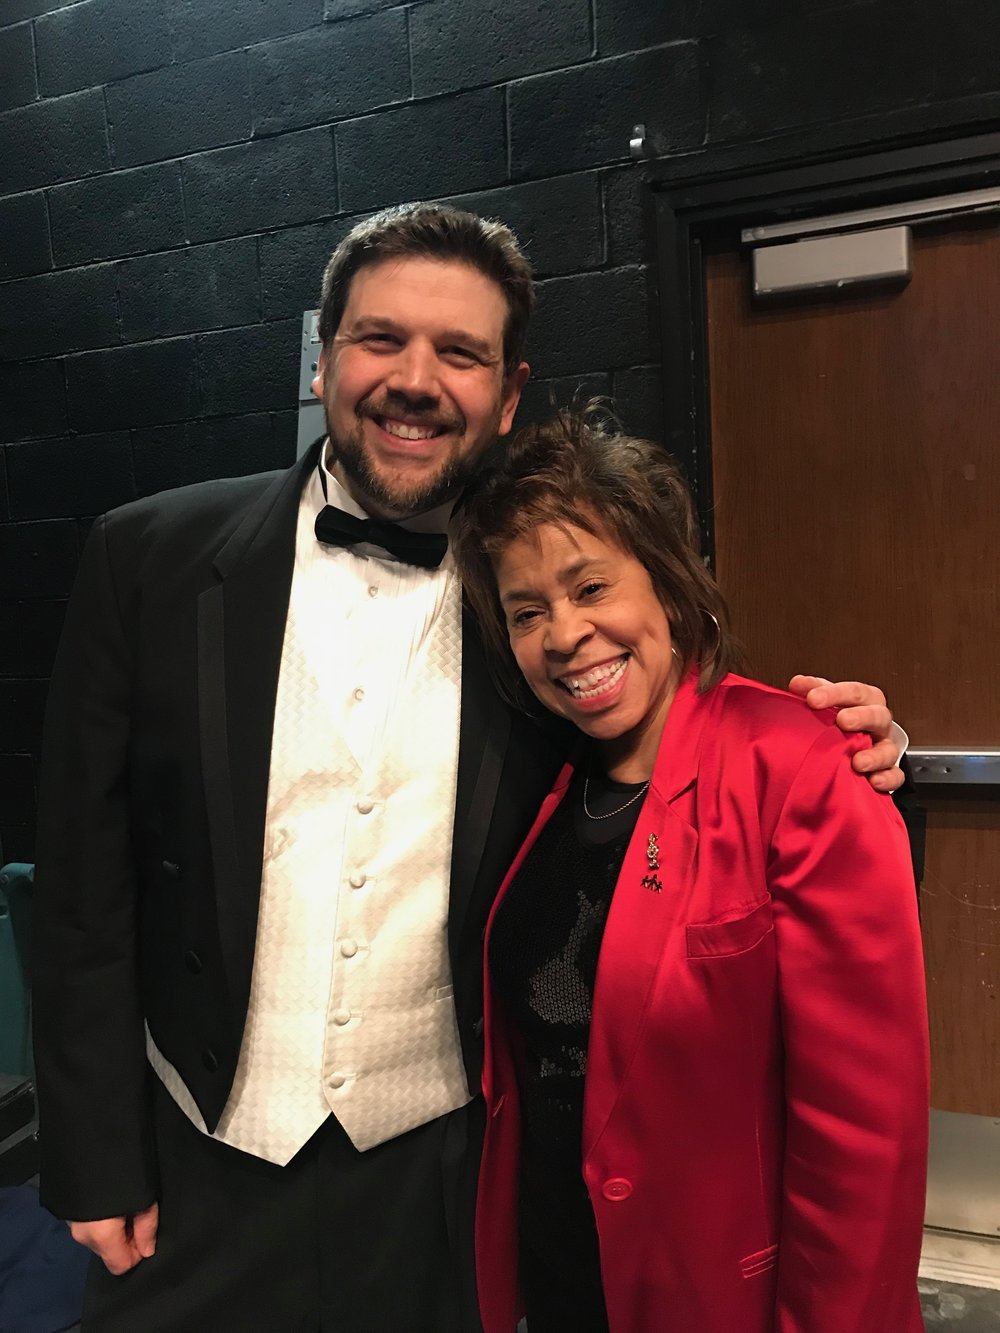 Congratulations on a wonderful conducting showcase, Linda Carter!